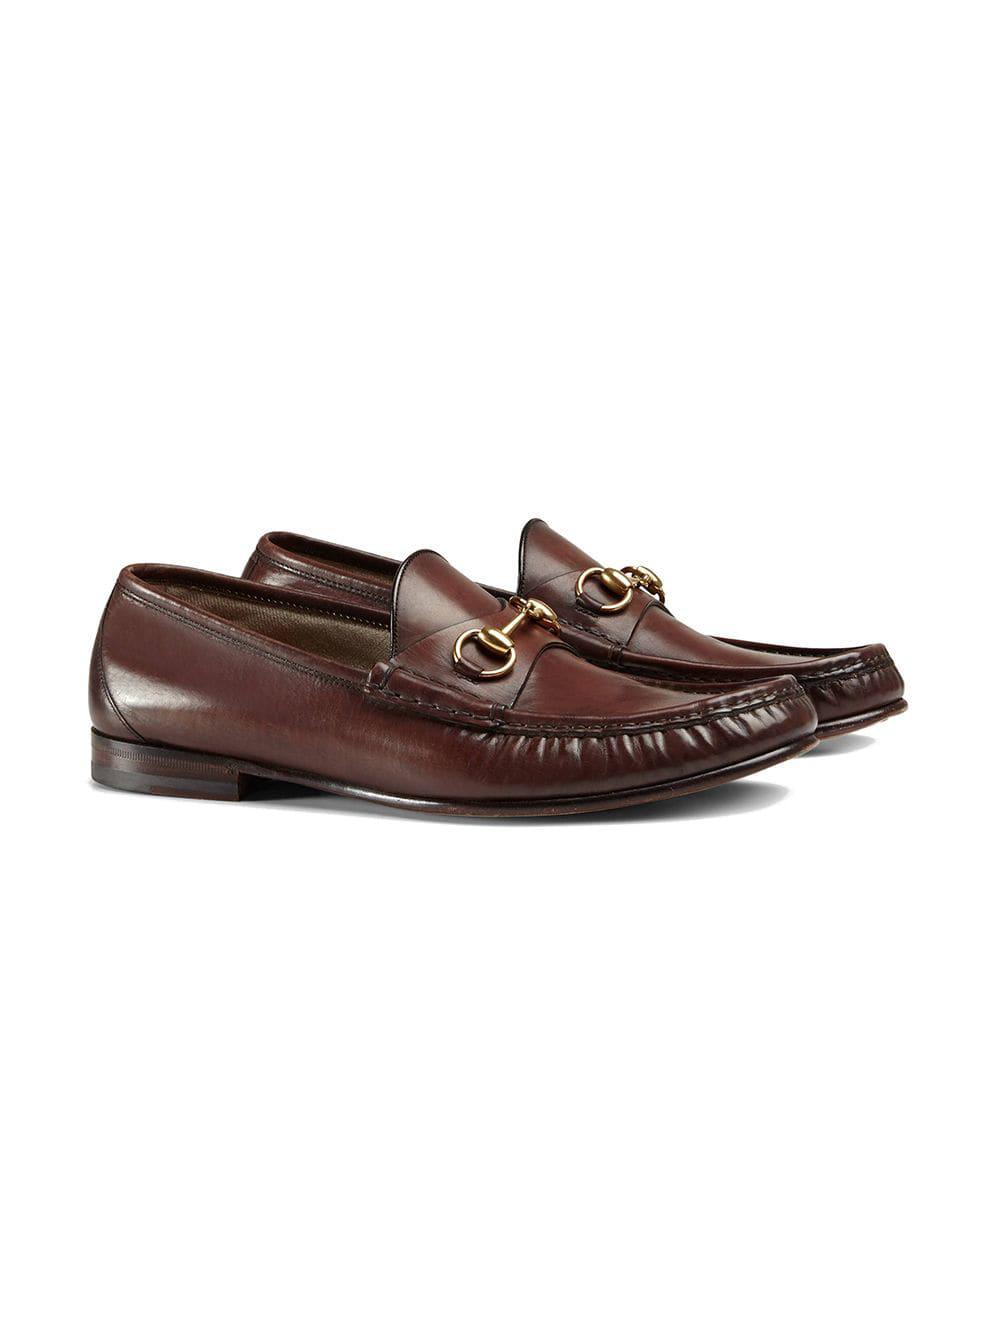 d17b8d3937d Gucci 1953 Horsebit Loafers in Brown for Men - Save 8% - Lyst